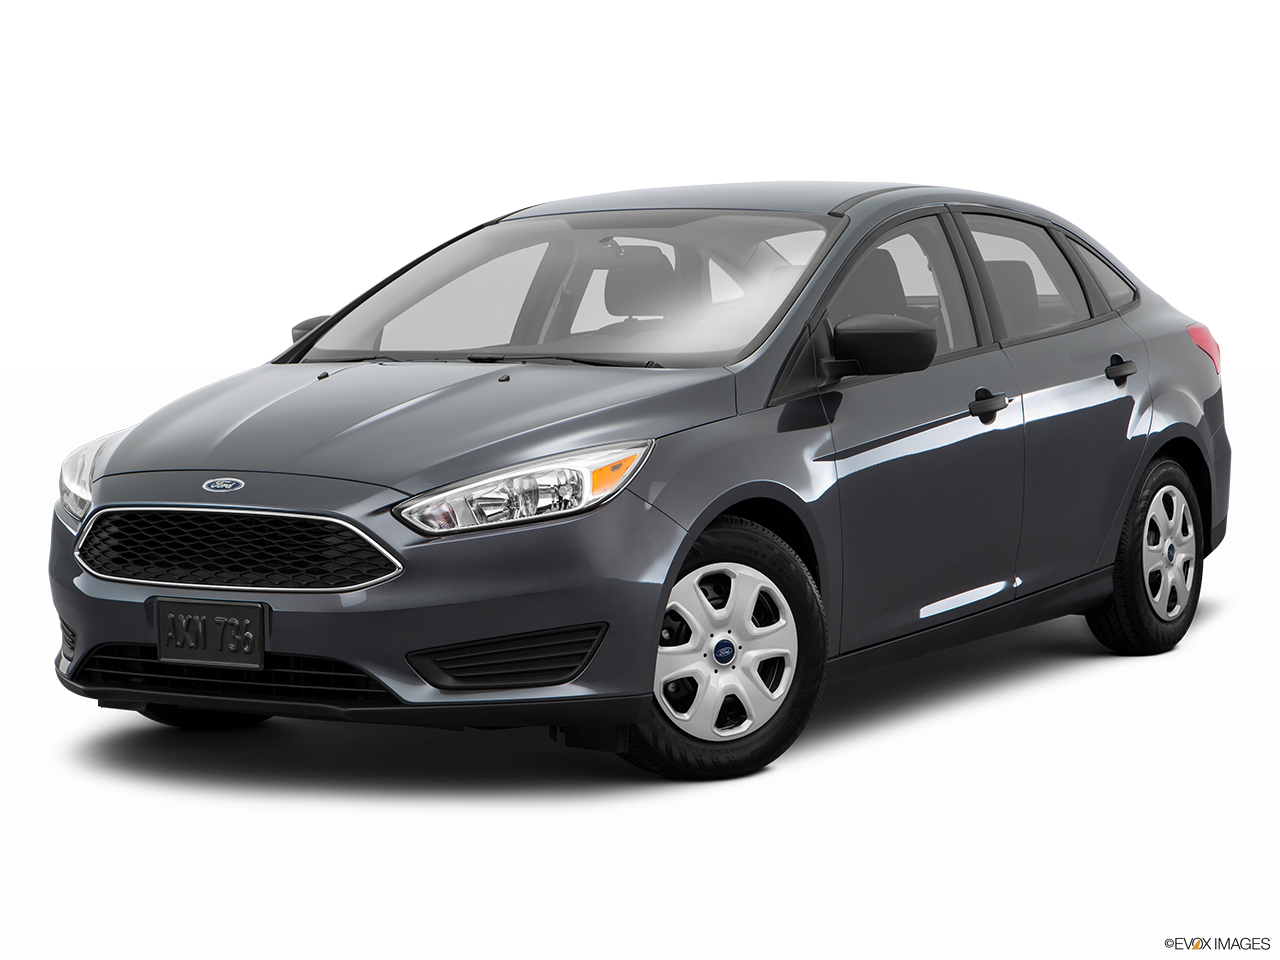 Test Drive A 2016 Ford Focus at Hoffman Ford in Harrisburg